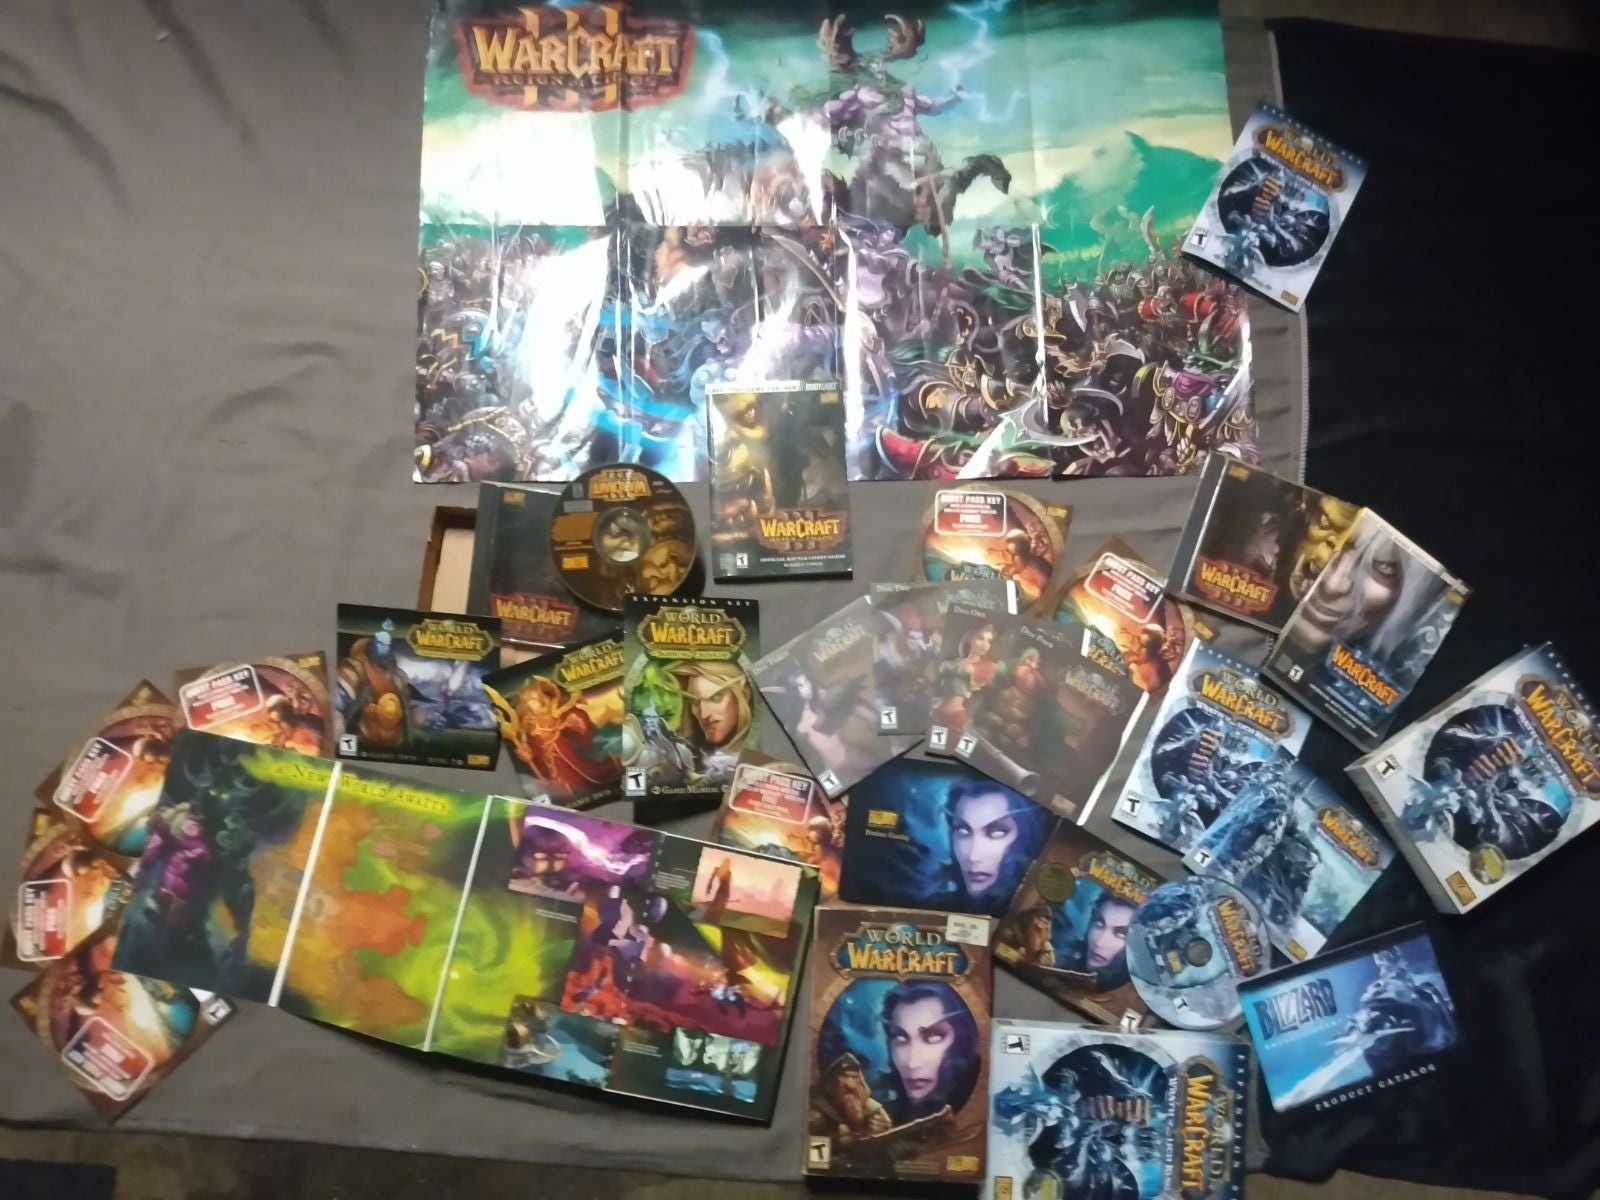 World of Warcraft special edition set PC